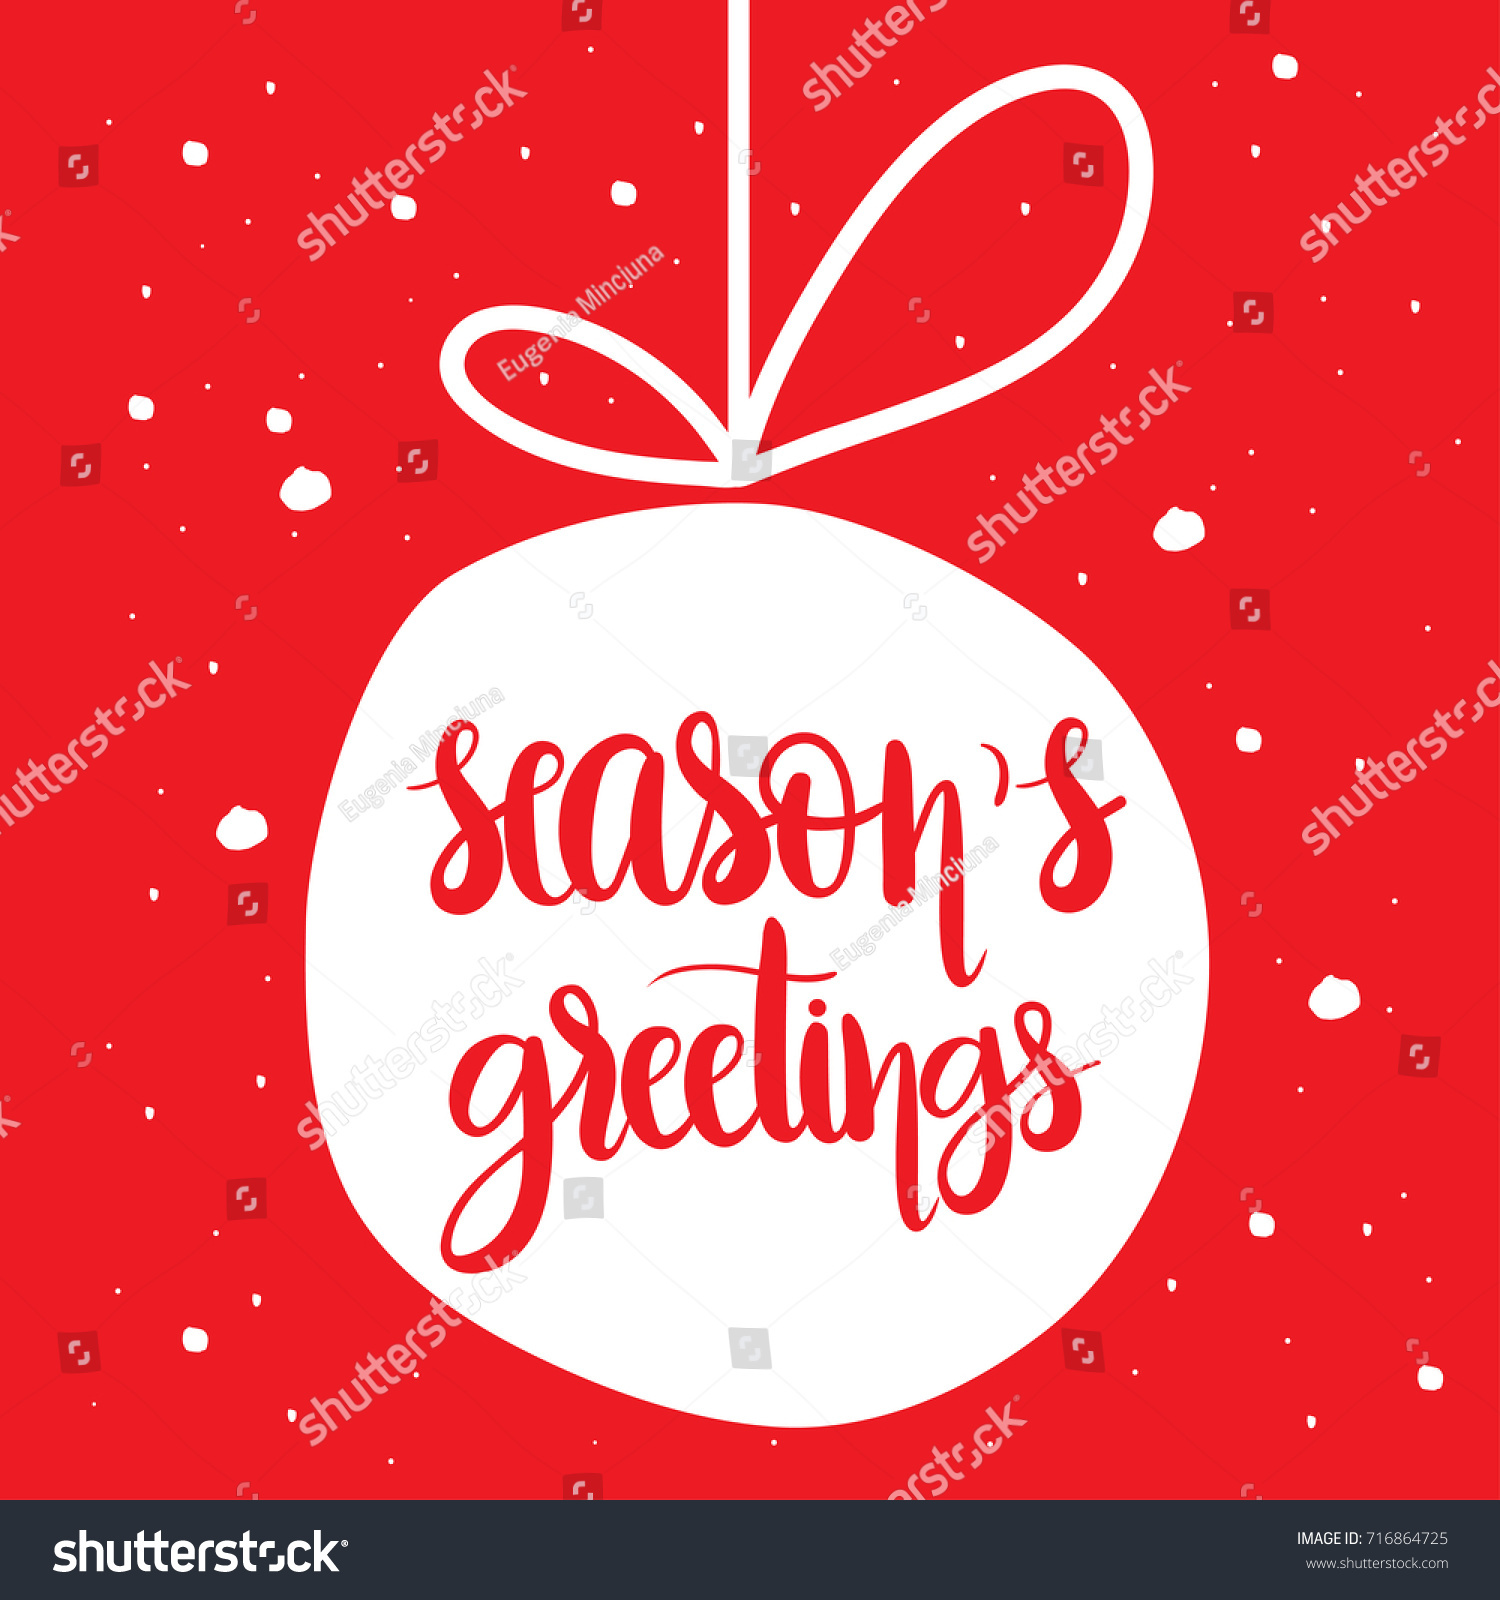 Seasons greetings unique hand drawn typographic stock vector seasons greetings unique hand drawn typographic posterctor artrfect design for cards kristyandbryce Choice Image